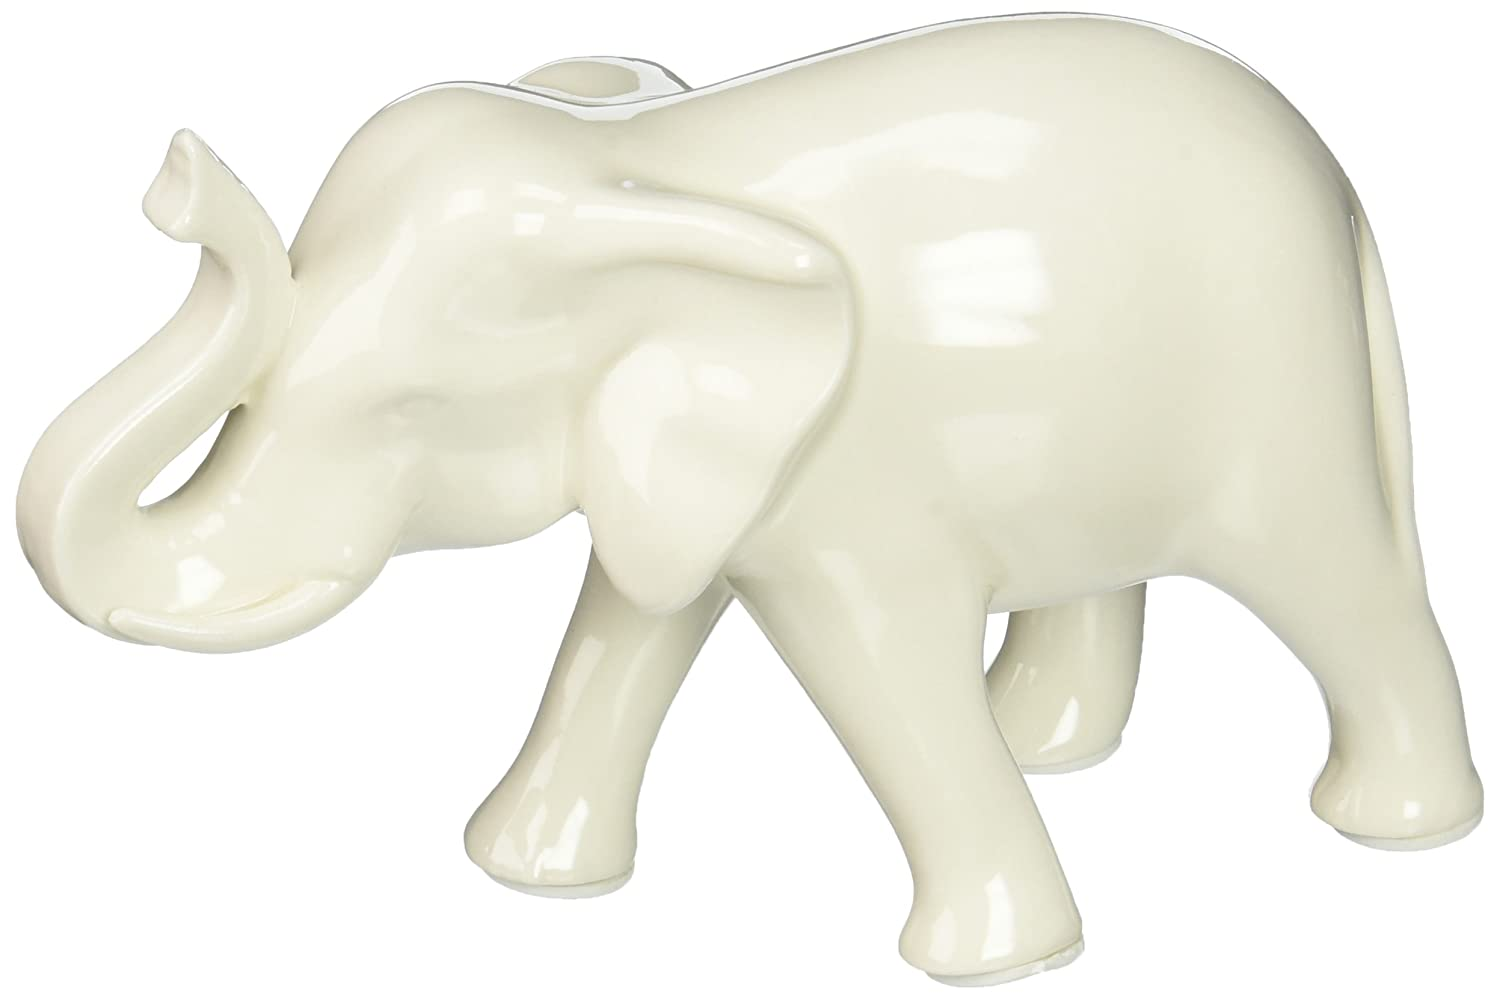 Amazon.com: Home Decor Sleek White Elephant Figurine: Home & Kitchen